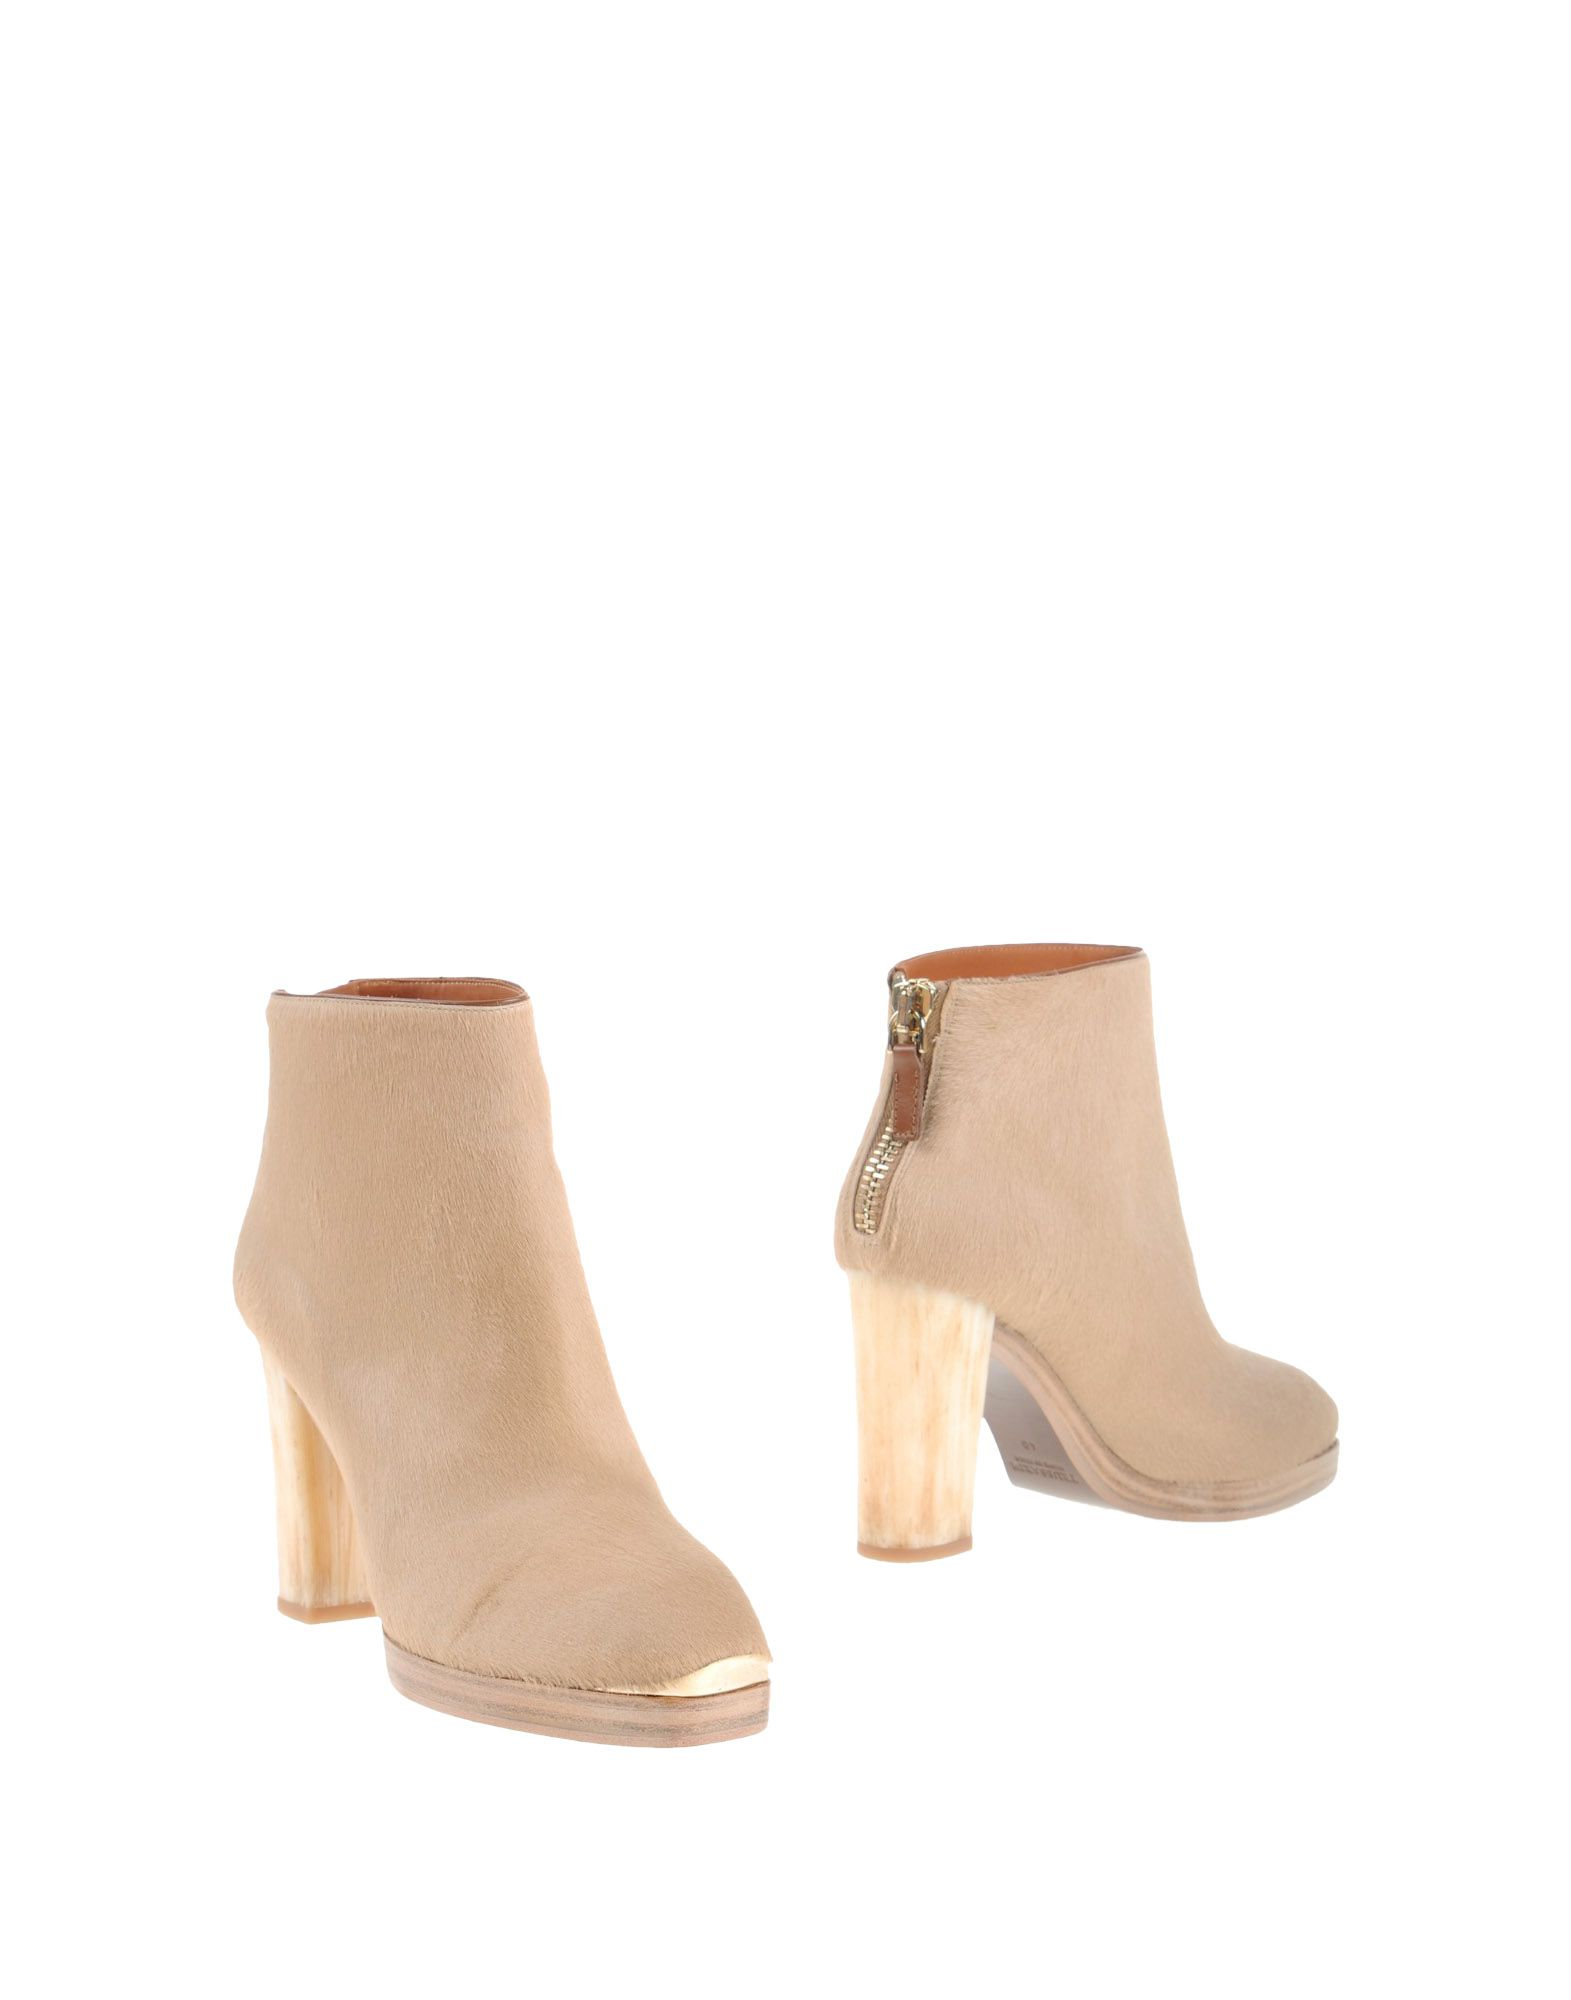 Bottine Trussardi Femme - Bottines Trussardi sur